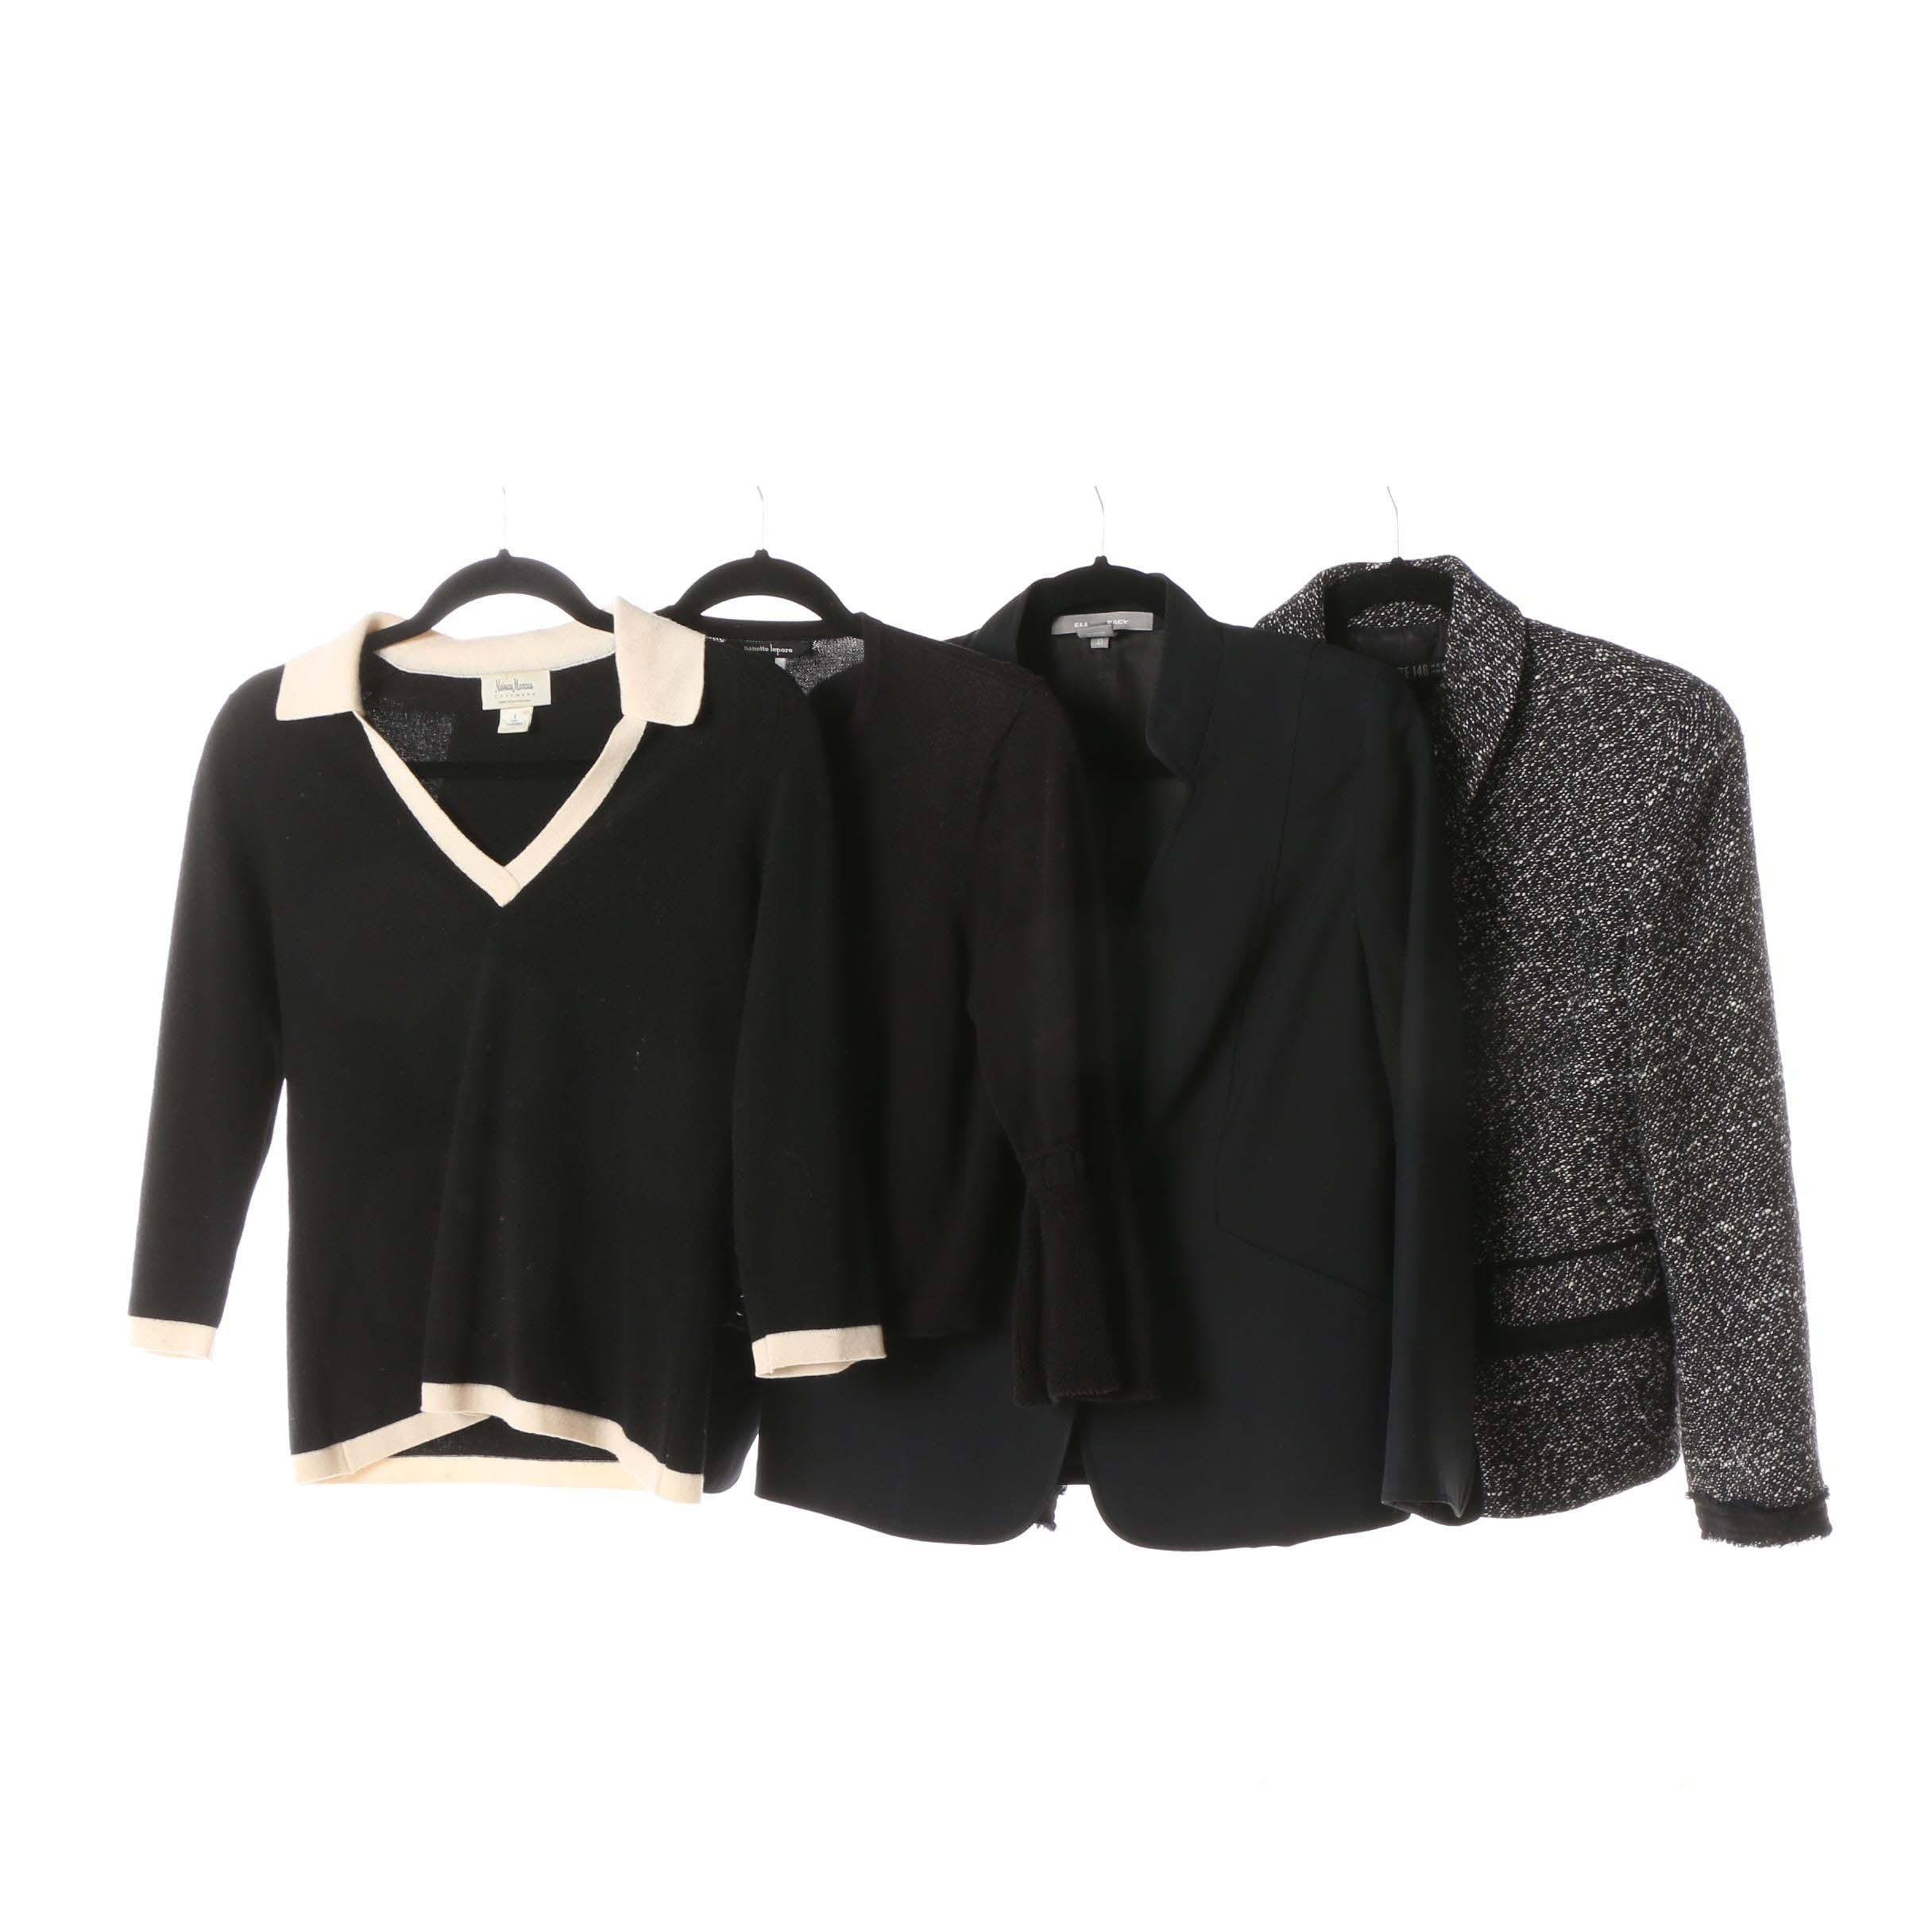 Women's Jackets and Sweaters Including Lafayette 148 New York and Nanette Lepore